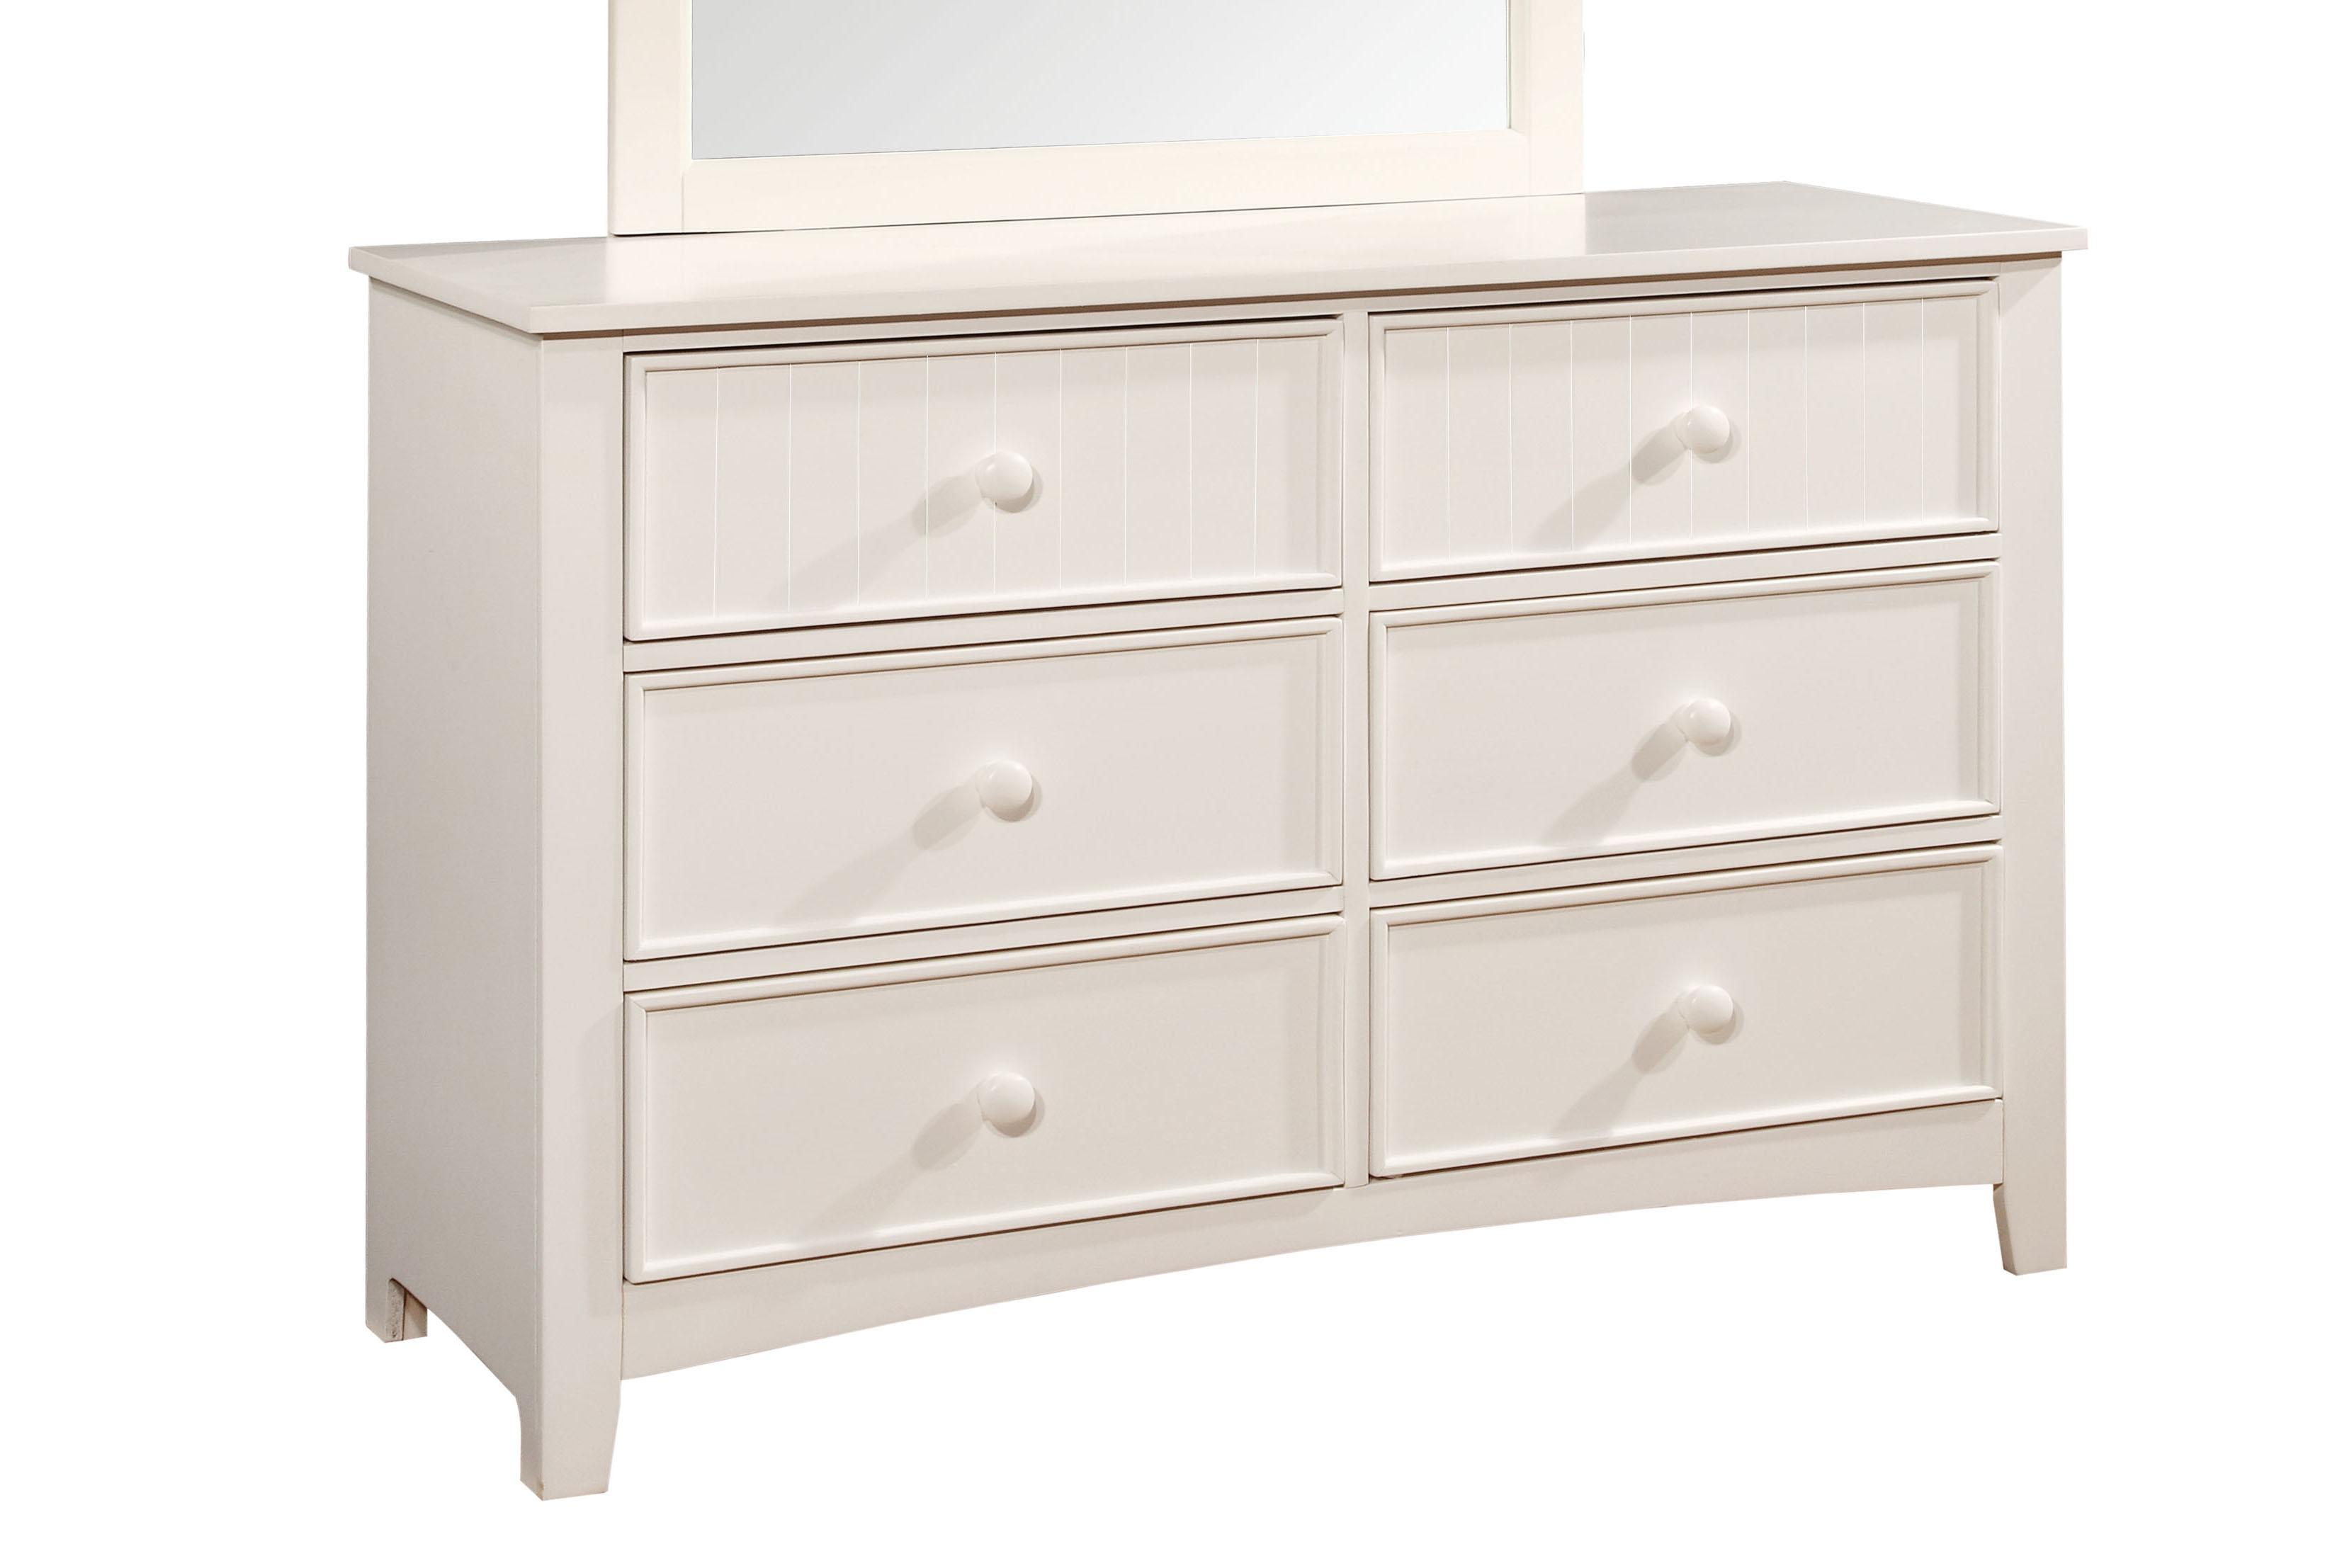 Hokku Designs Alyssa Six Drawer Dresser in White by Urbal Furnishings